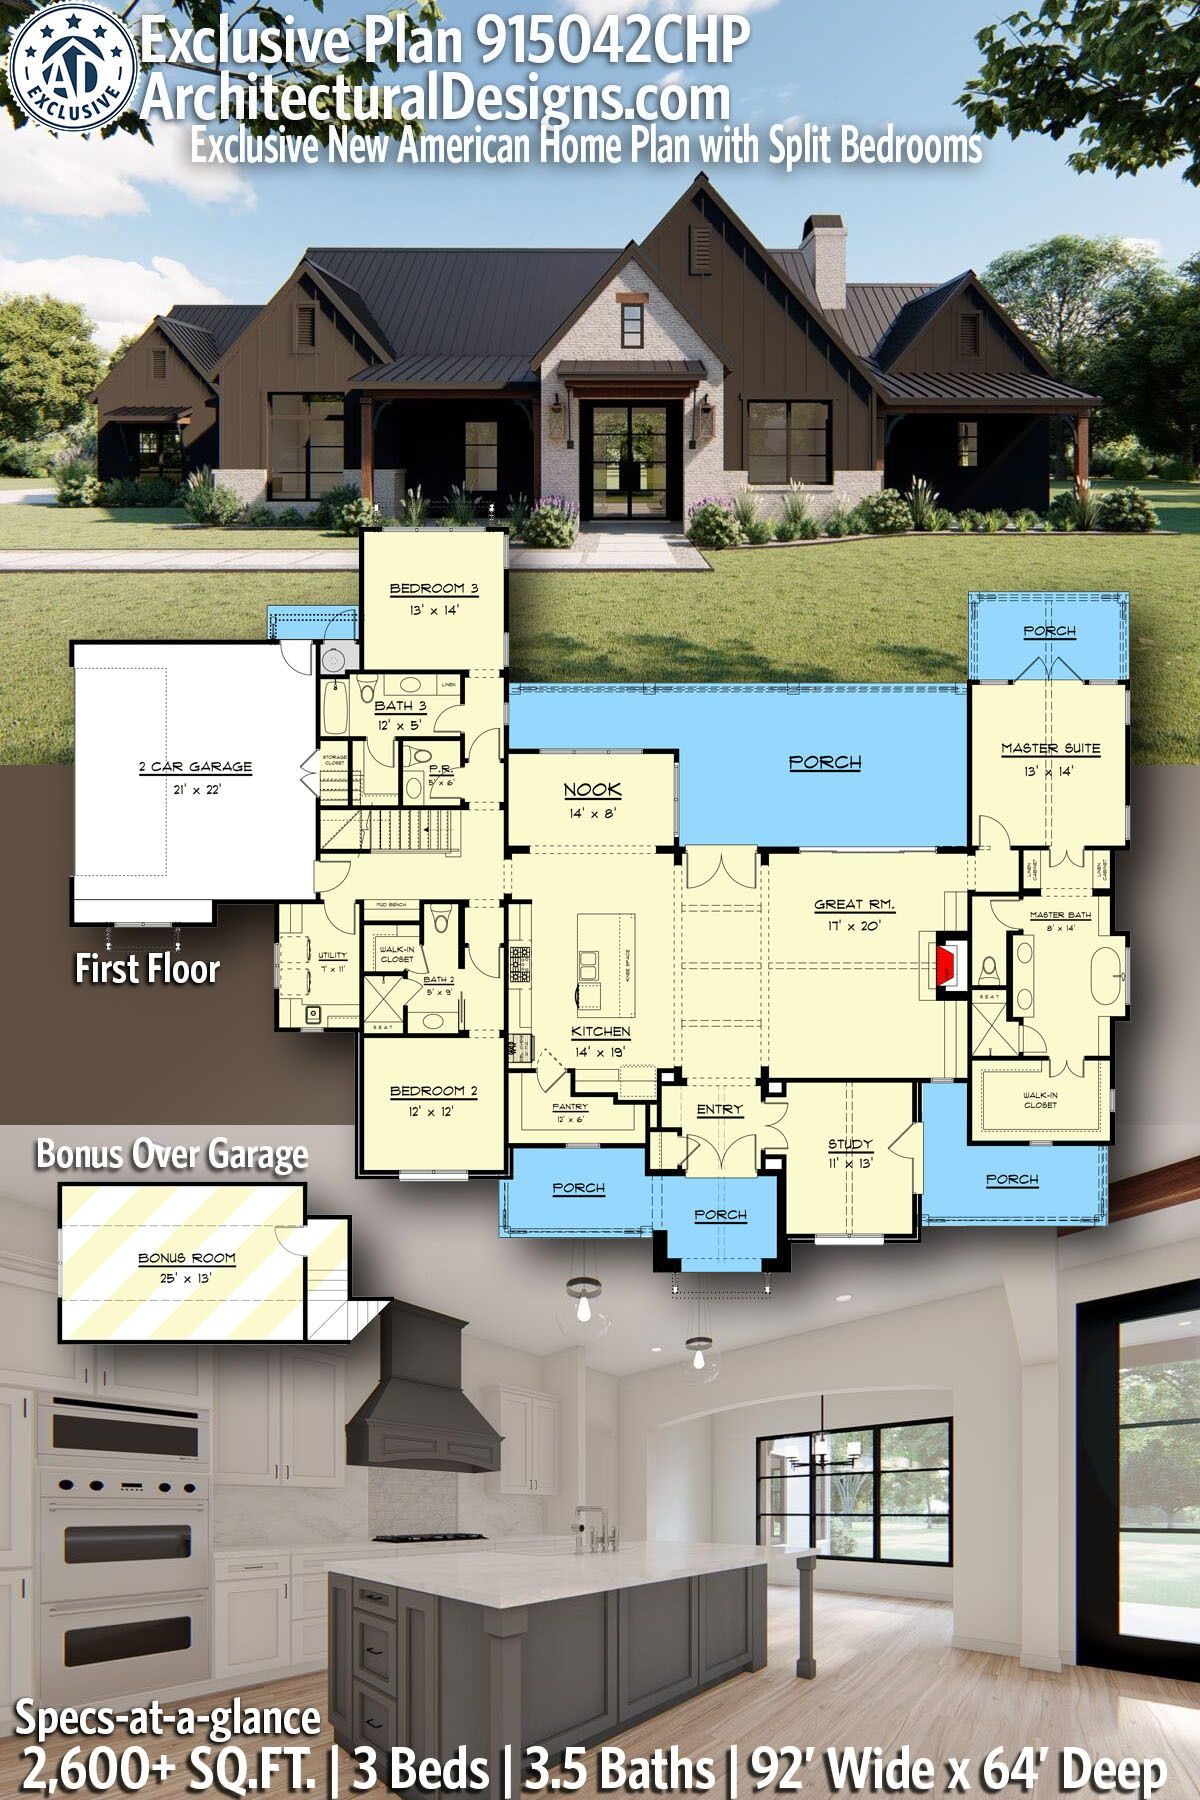 Plan 915042chp Exclusive New American Home Plan With Split Bedrooms New House Plans Dream House Plans House Plans Farmhouse